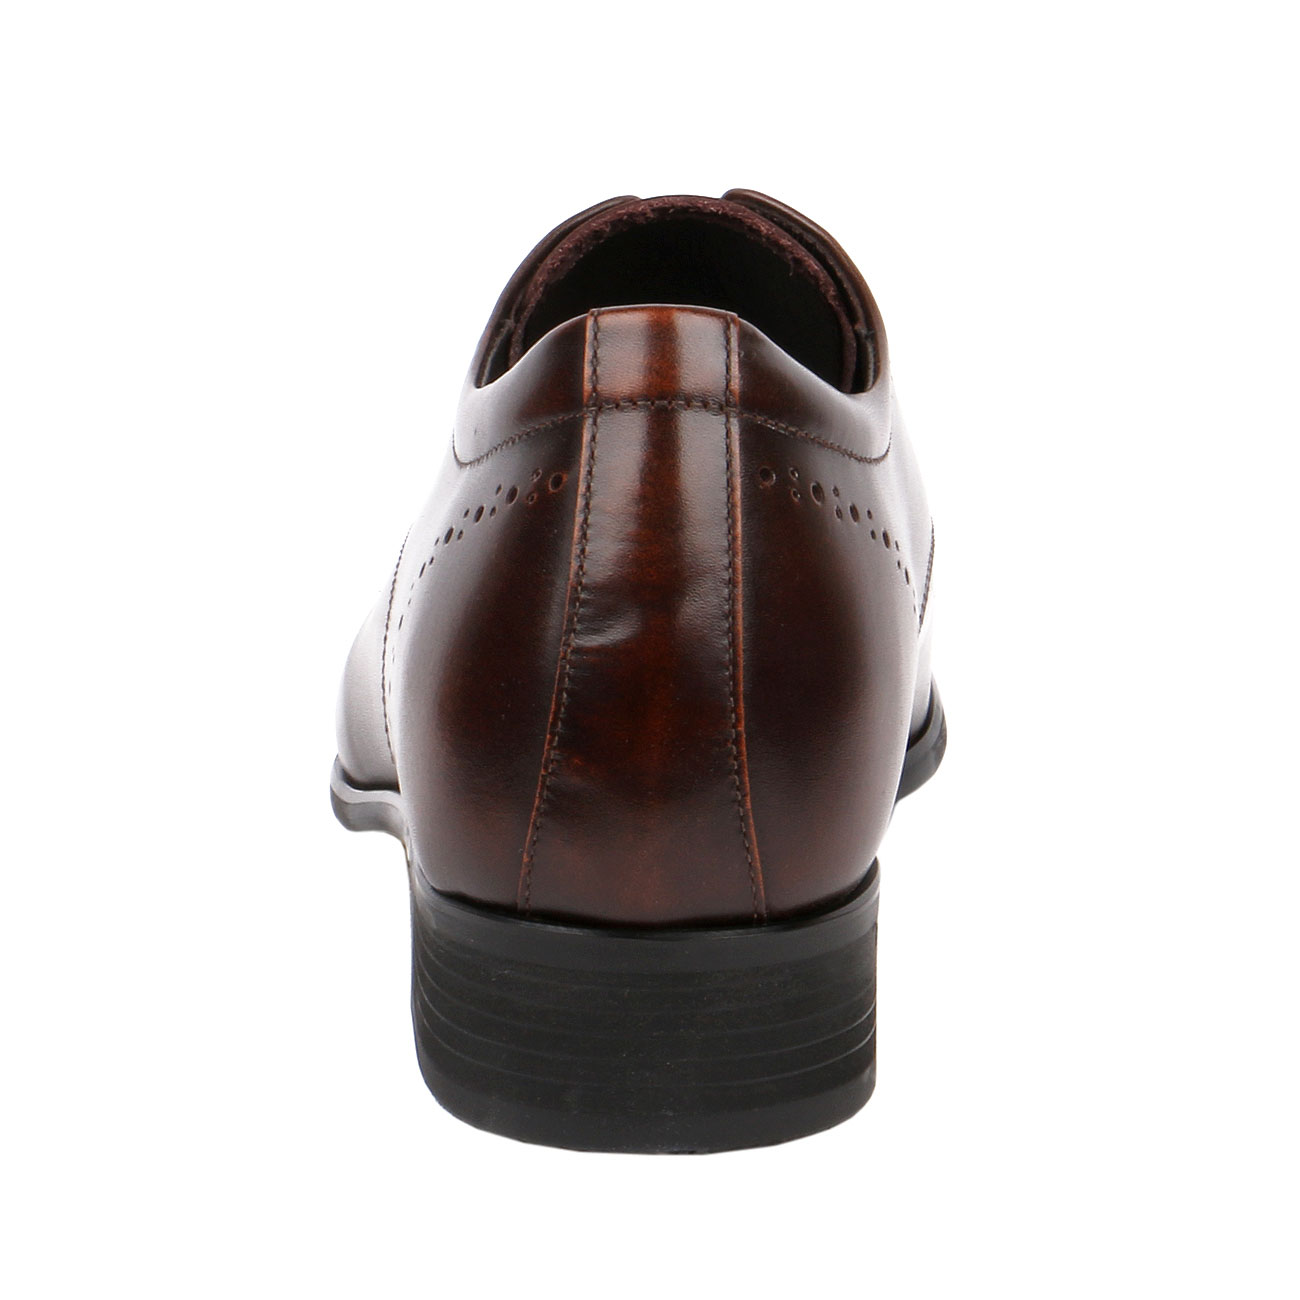 Classic A Cap-Toe Oxford Shoe With Two Tone Brown Semi Glossy  Formal, Elegant & Dressy - Eindrof-3